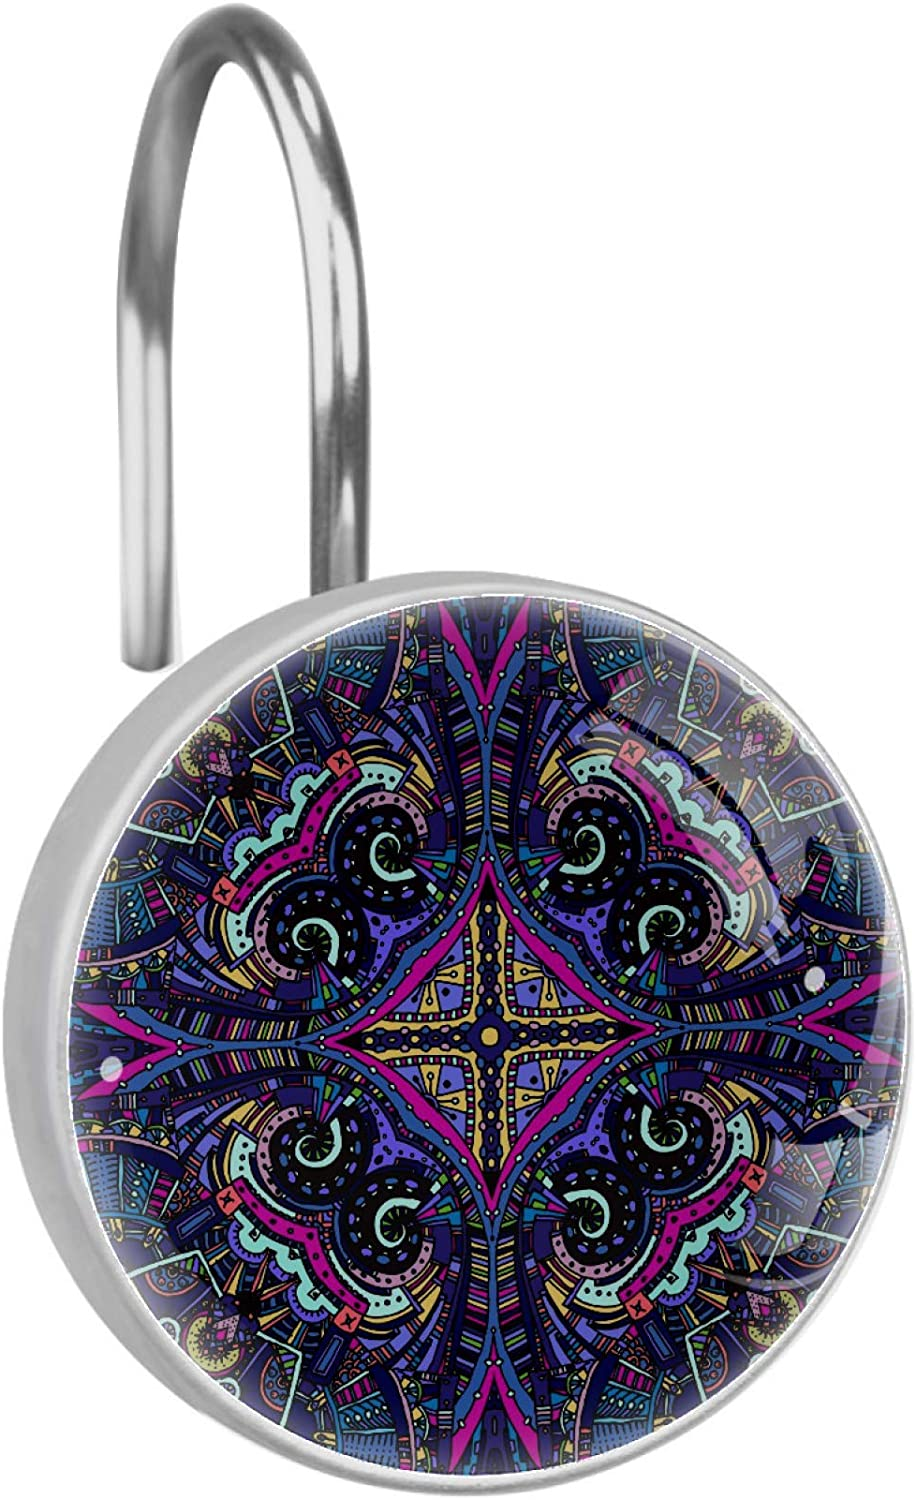 Los Angeles Mall Mandala Purple Psychedelic Owl Set of Rings Curtain 12 Ru Shower Be super welcome